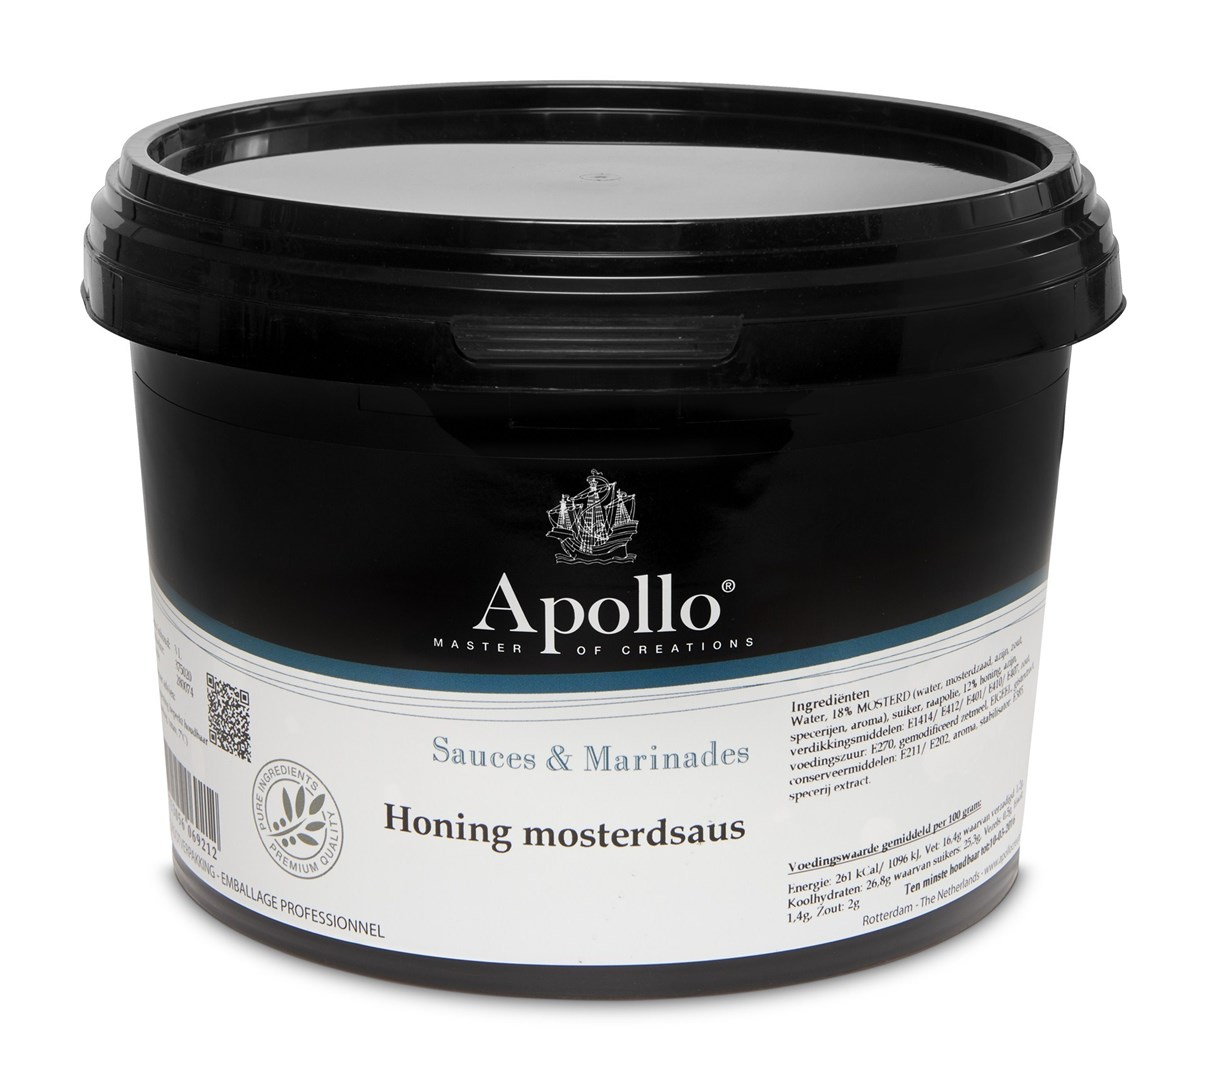 Productafbeelding Honing mosterdsaus a 2,5 kg